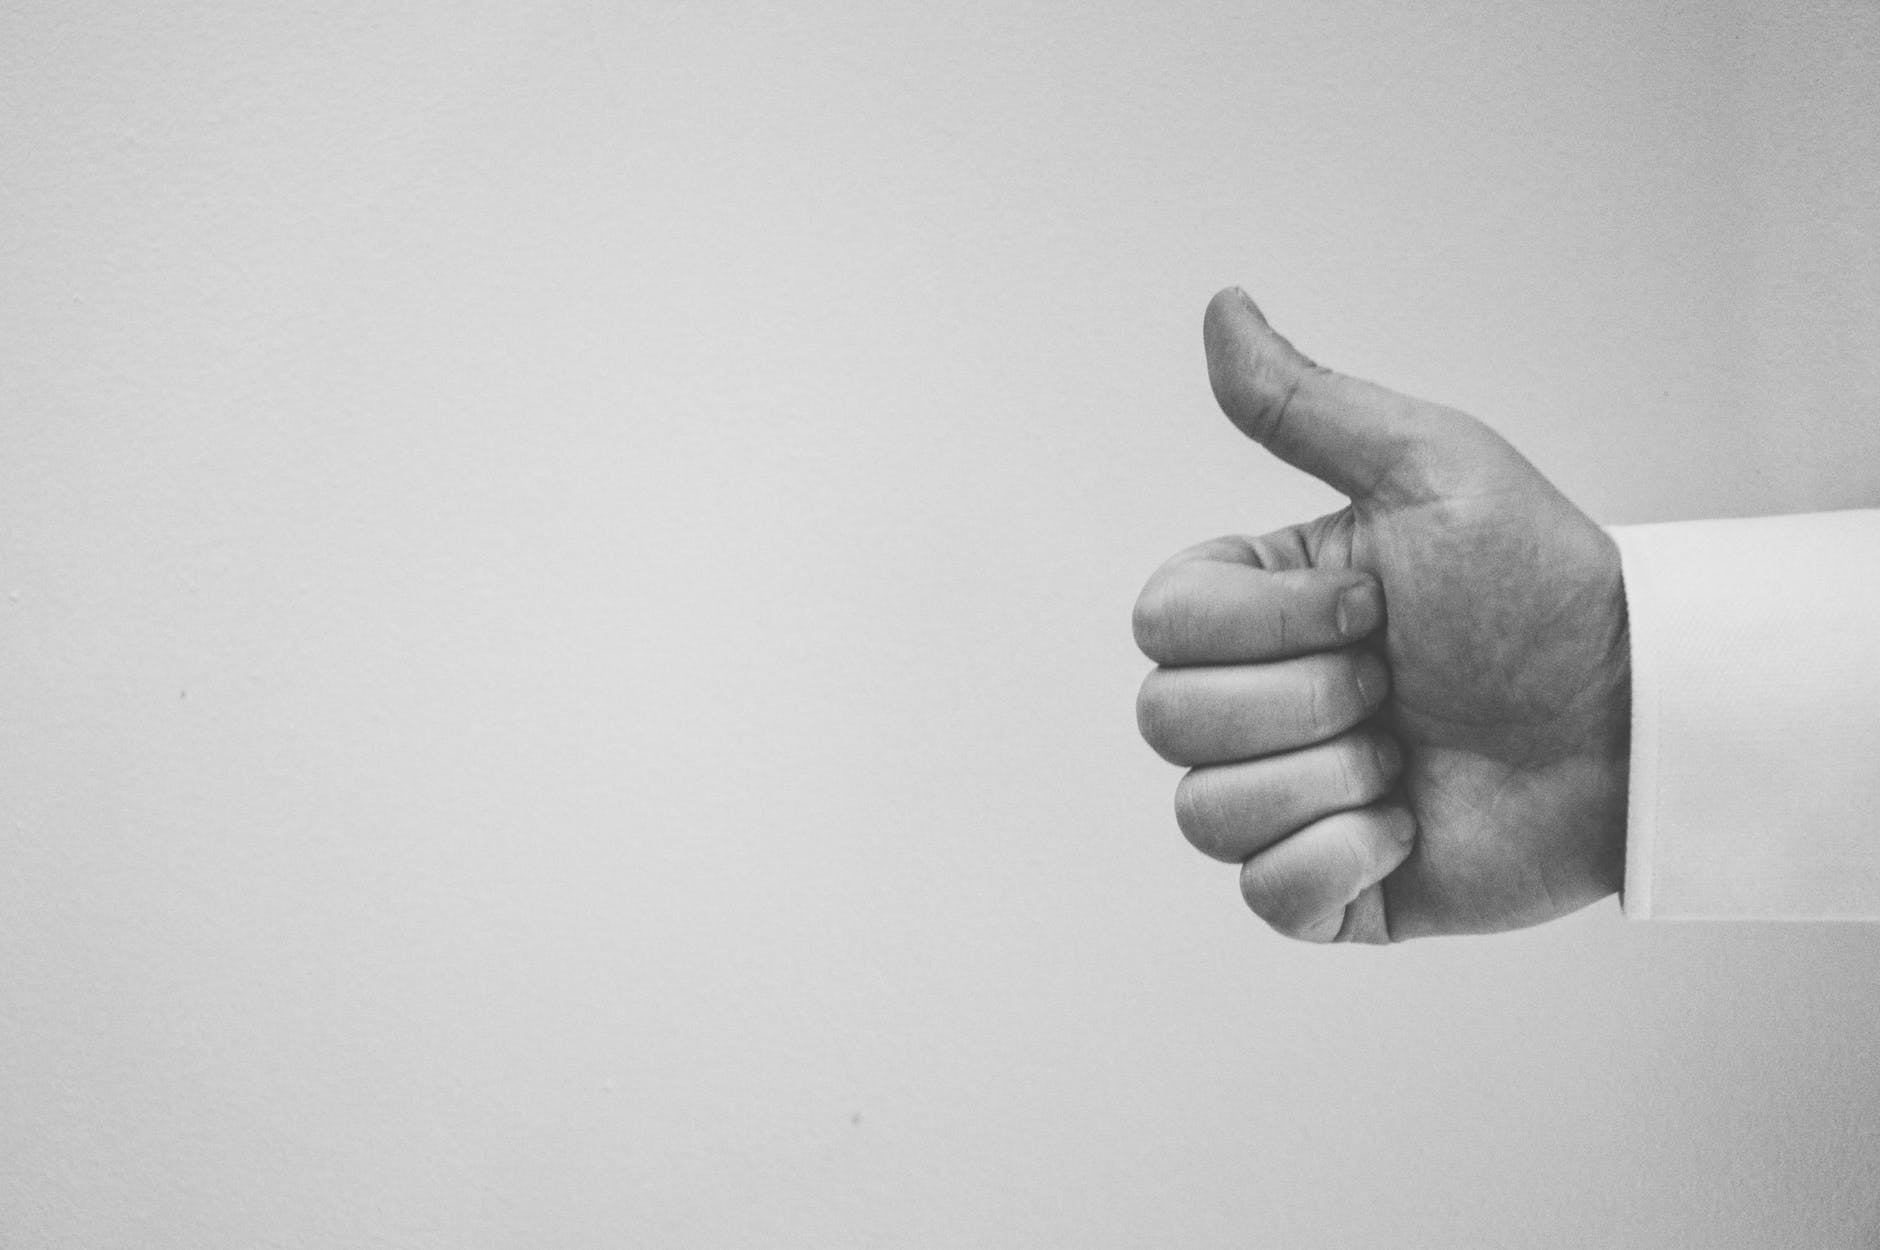 hand thumbs up thumb black and white